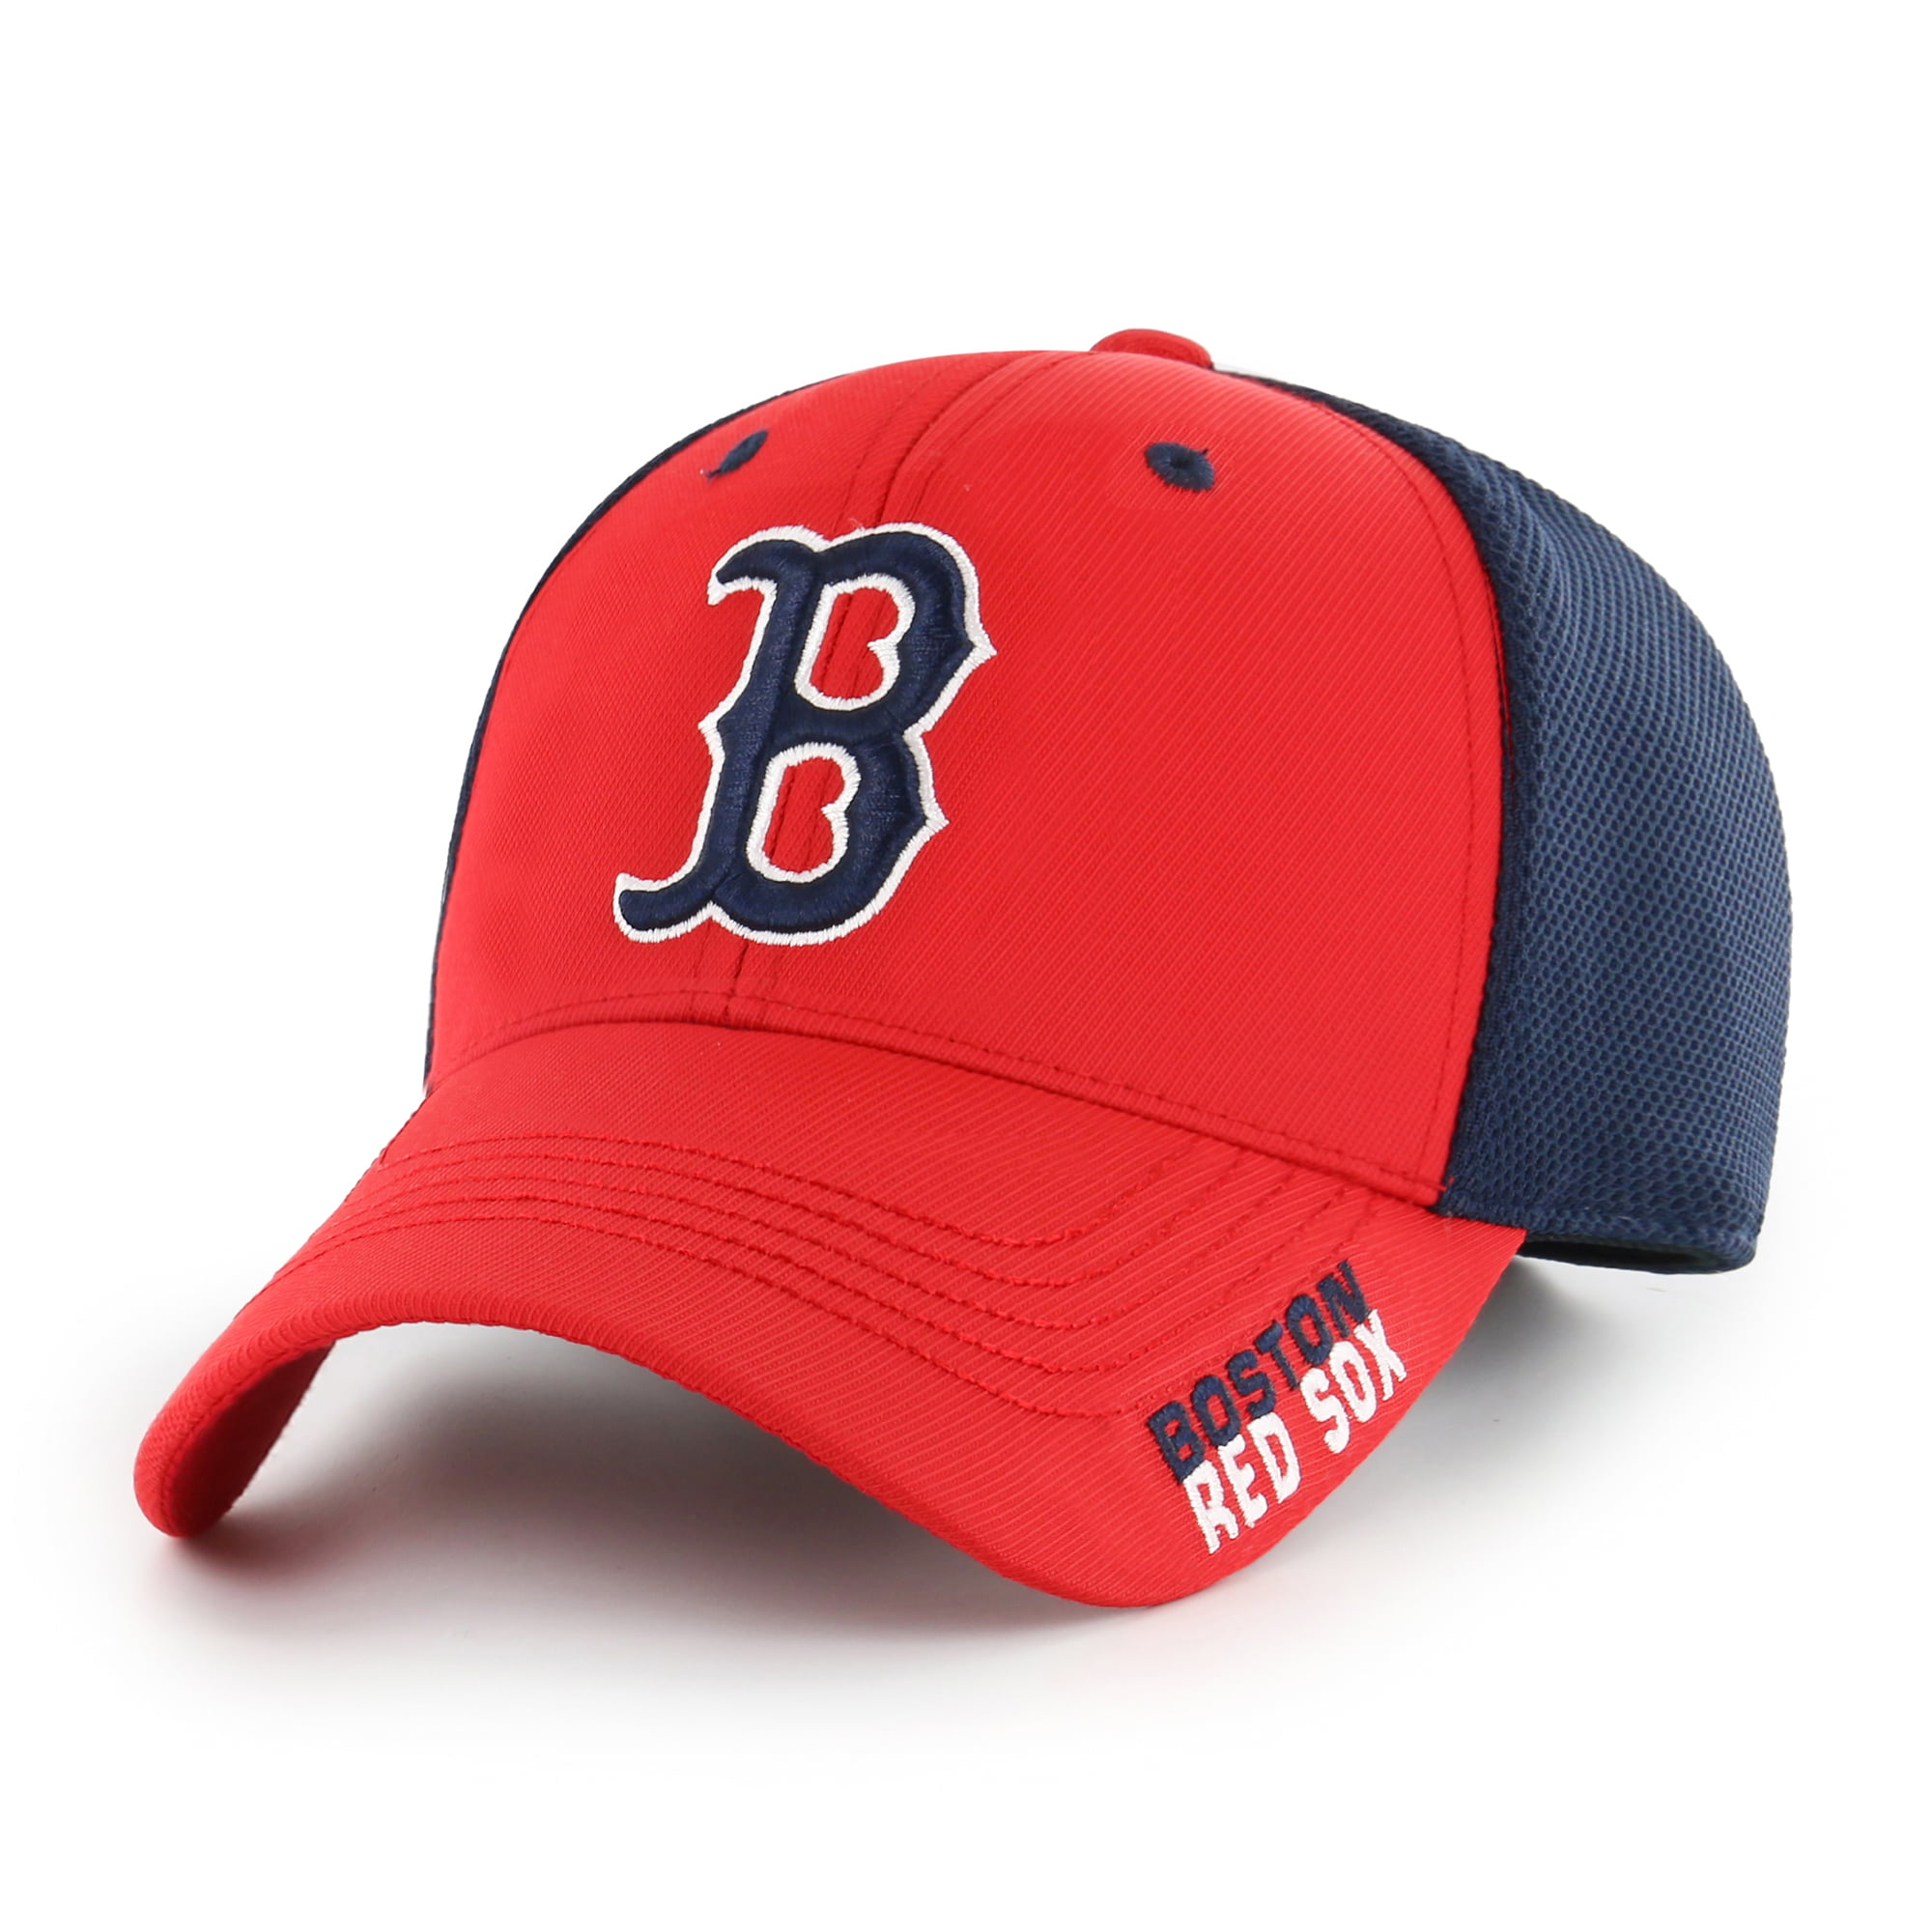 9604186a0bb9a Boston Red Sox Team Shop - Walmart.com